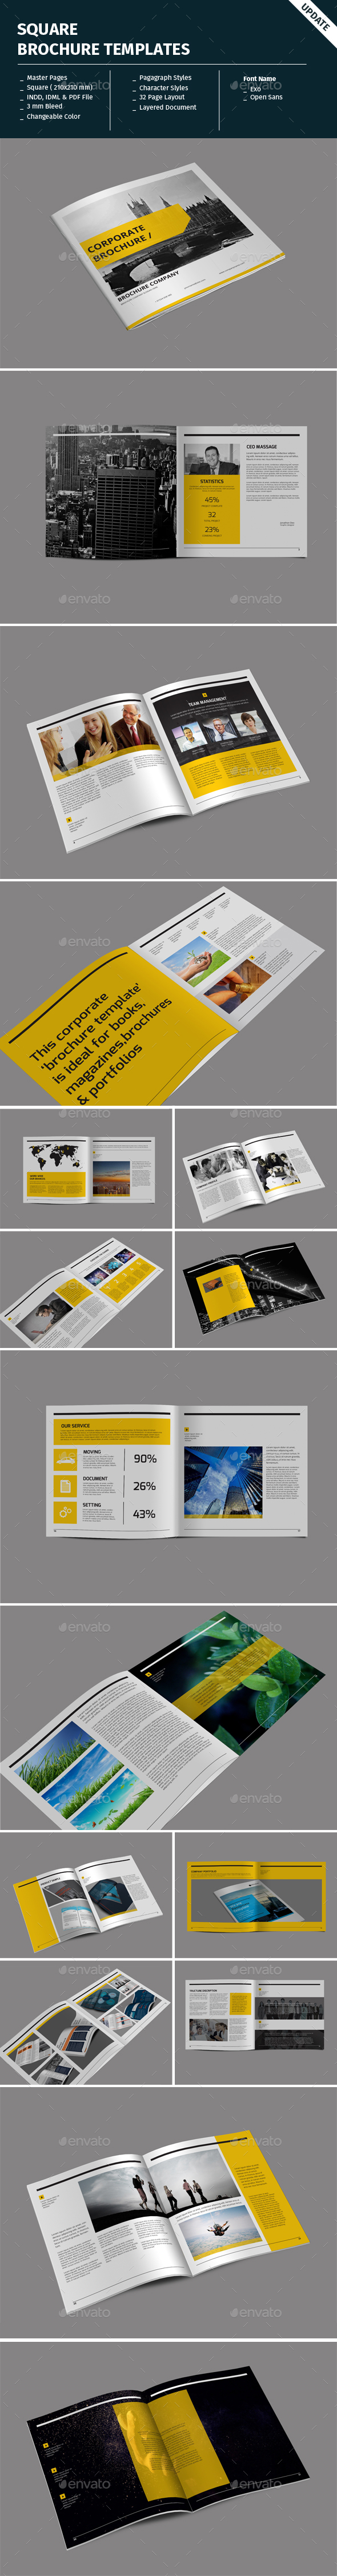 Square Brochure Templates - Corporate Brochures